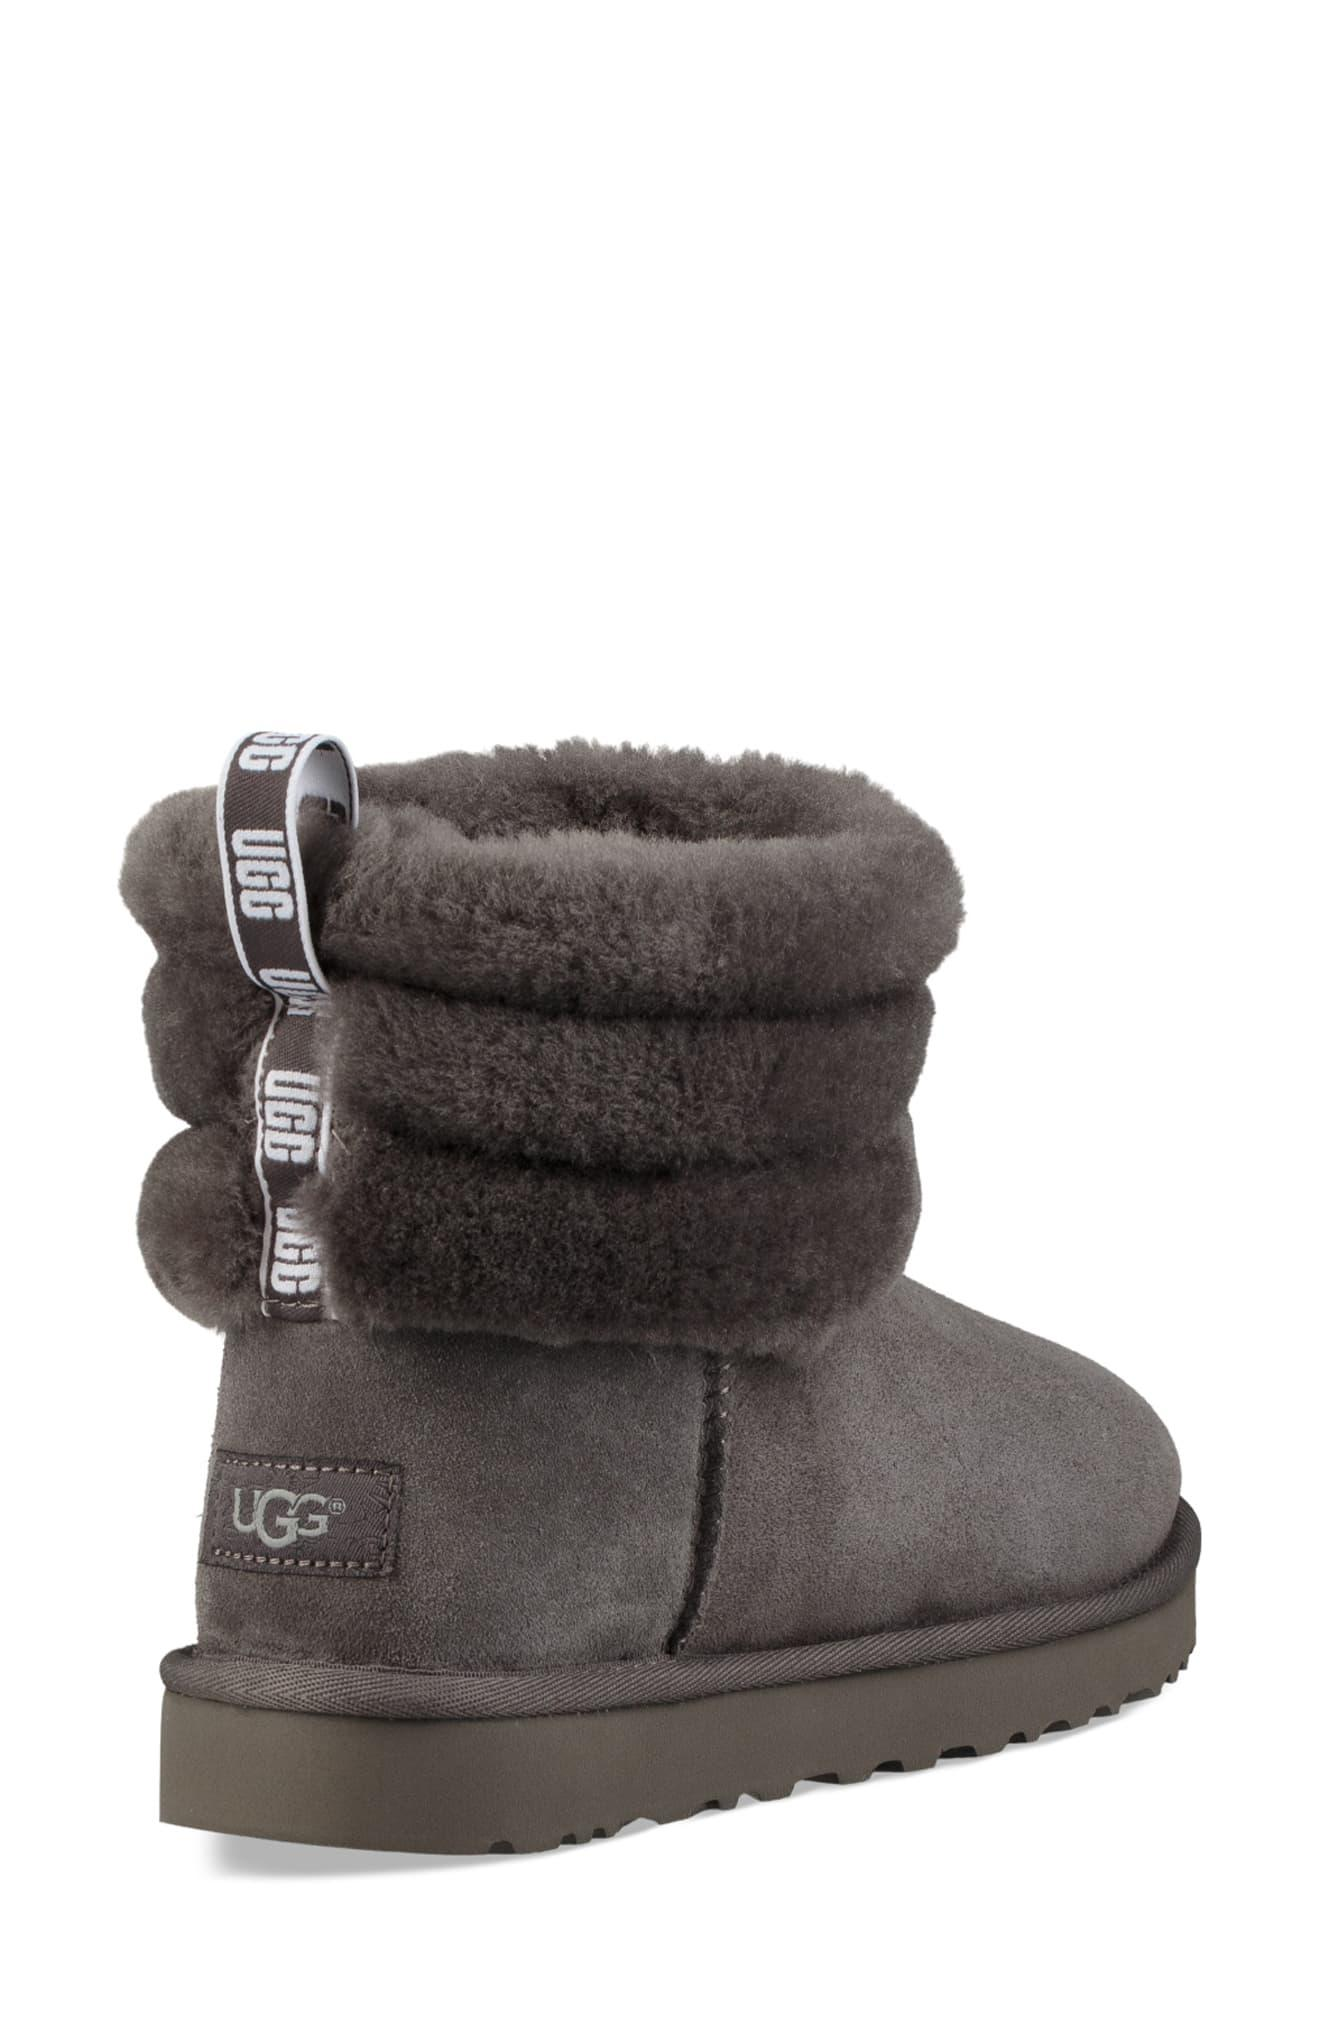 ec6ad9b5d07 Women's Gray Fluff Mini Quilted Boots